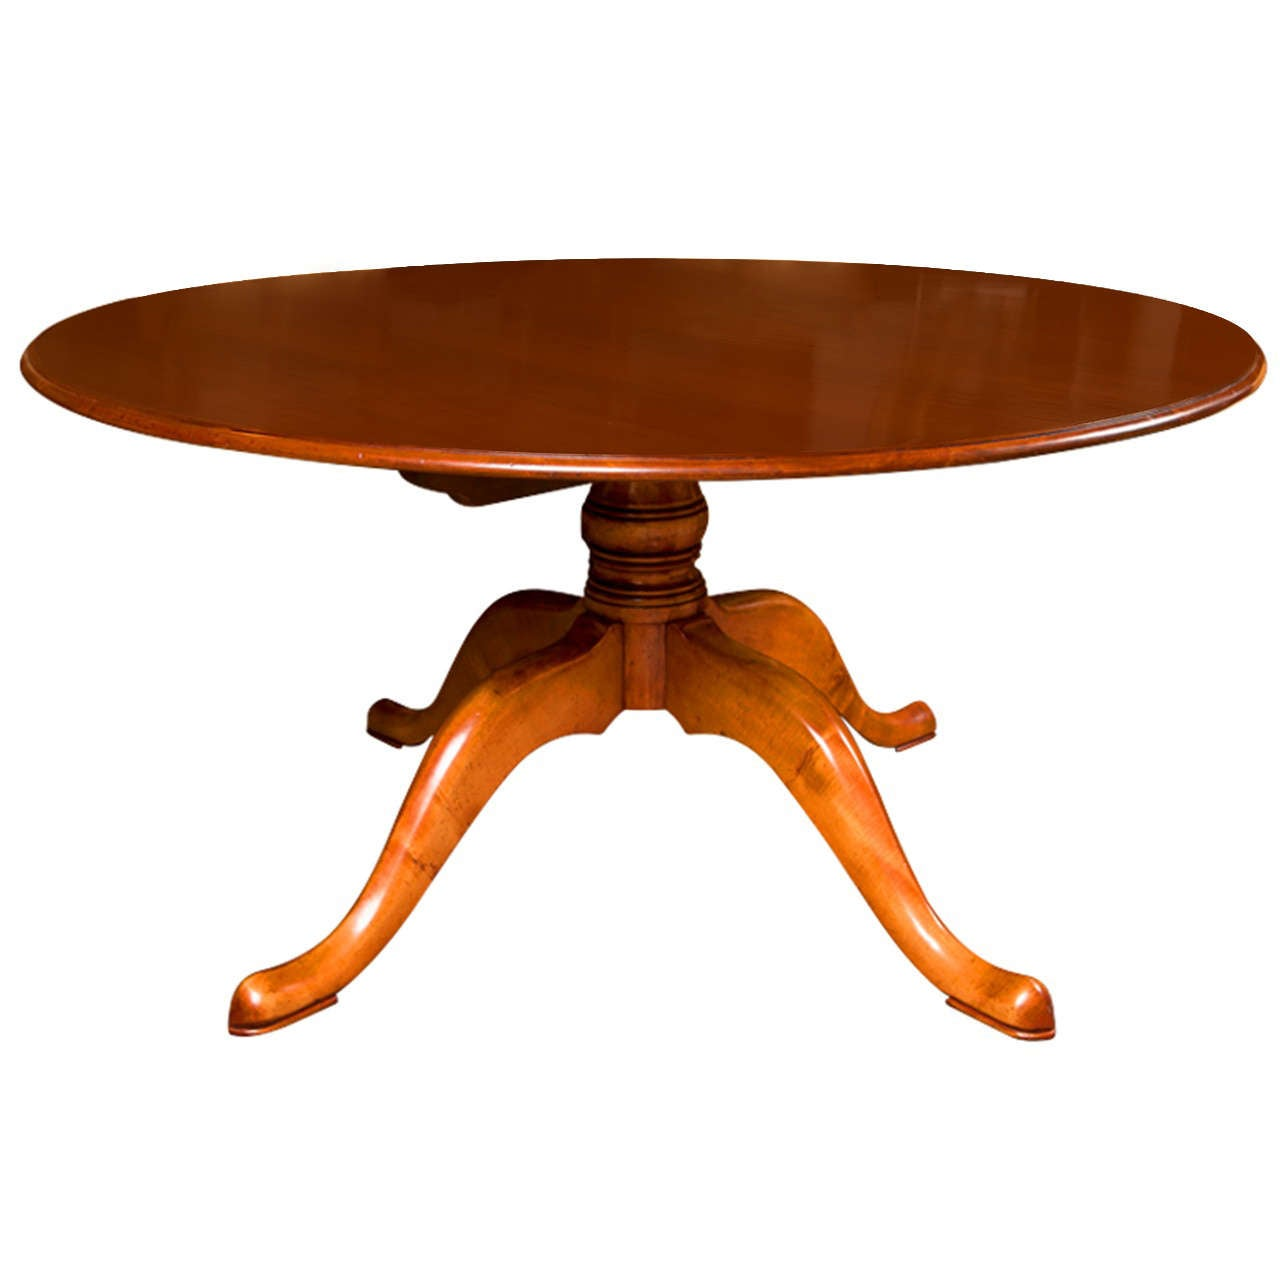 Custom english 60 round cherry dining table for sale at for Cherry dining table